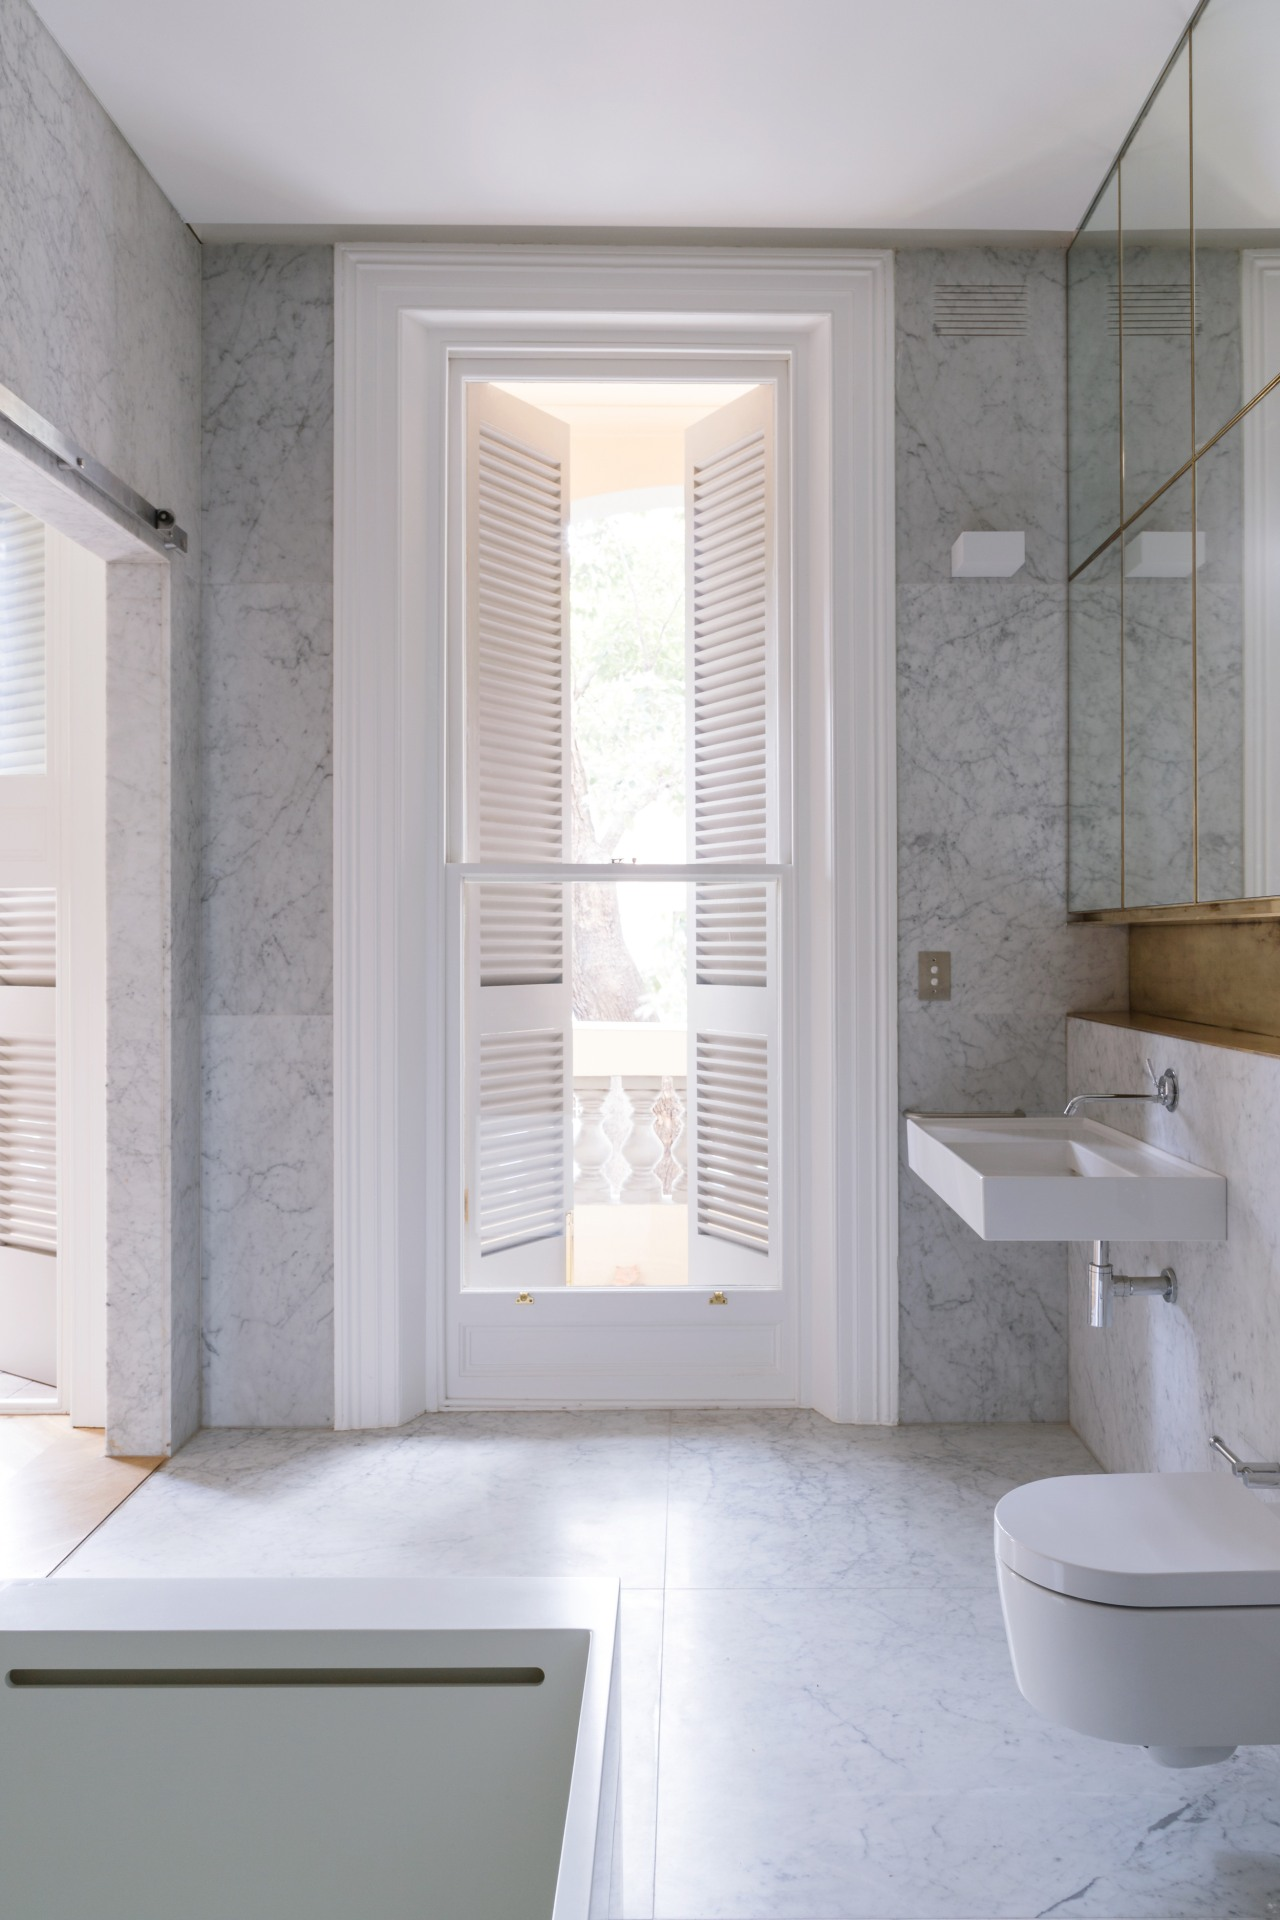 Renatto D'Ettorre Architects – Winner of the 2018 architecture, bathroom, bathroom accessory, bathroom cabinet, curtain, daylighting, door, floor, home, house, interior design, plumbing fixture, room, sash window, tile, wall, window, window covering, window treatment, gray